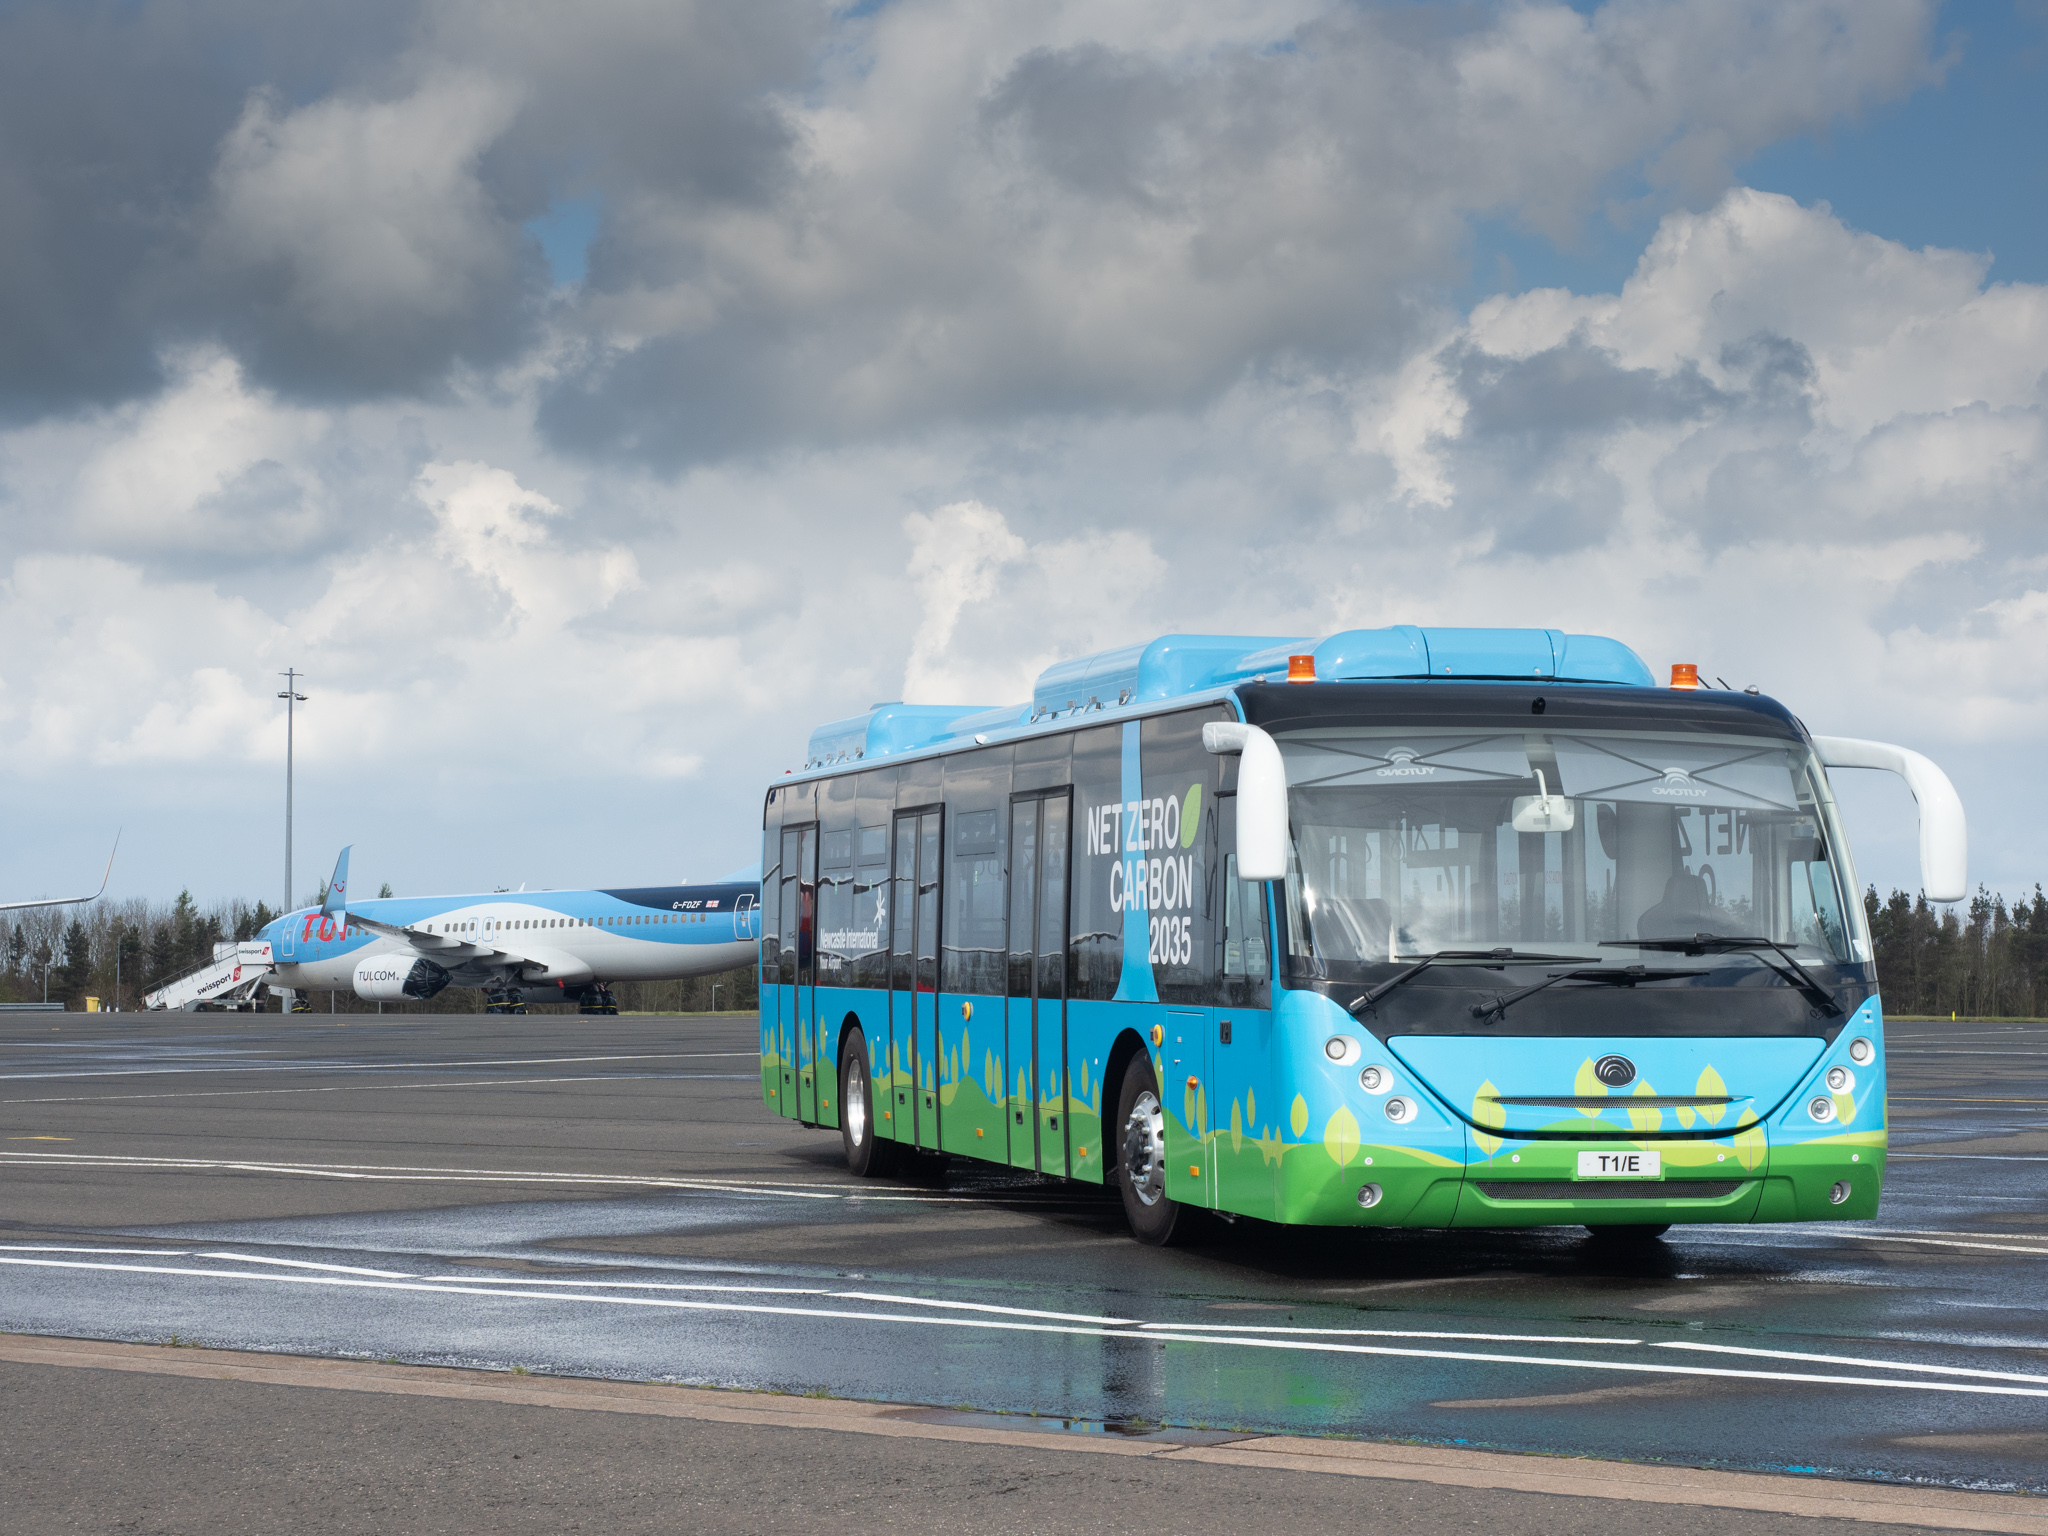 Pelican sells the UK's first electric airside bus